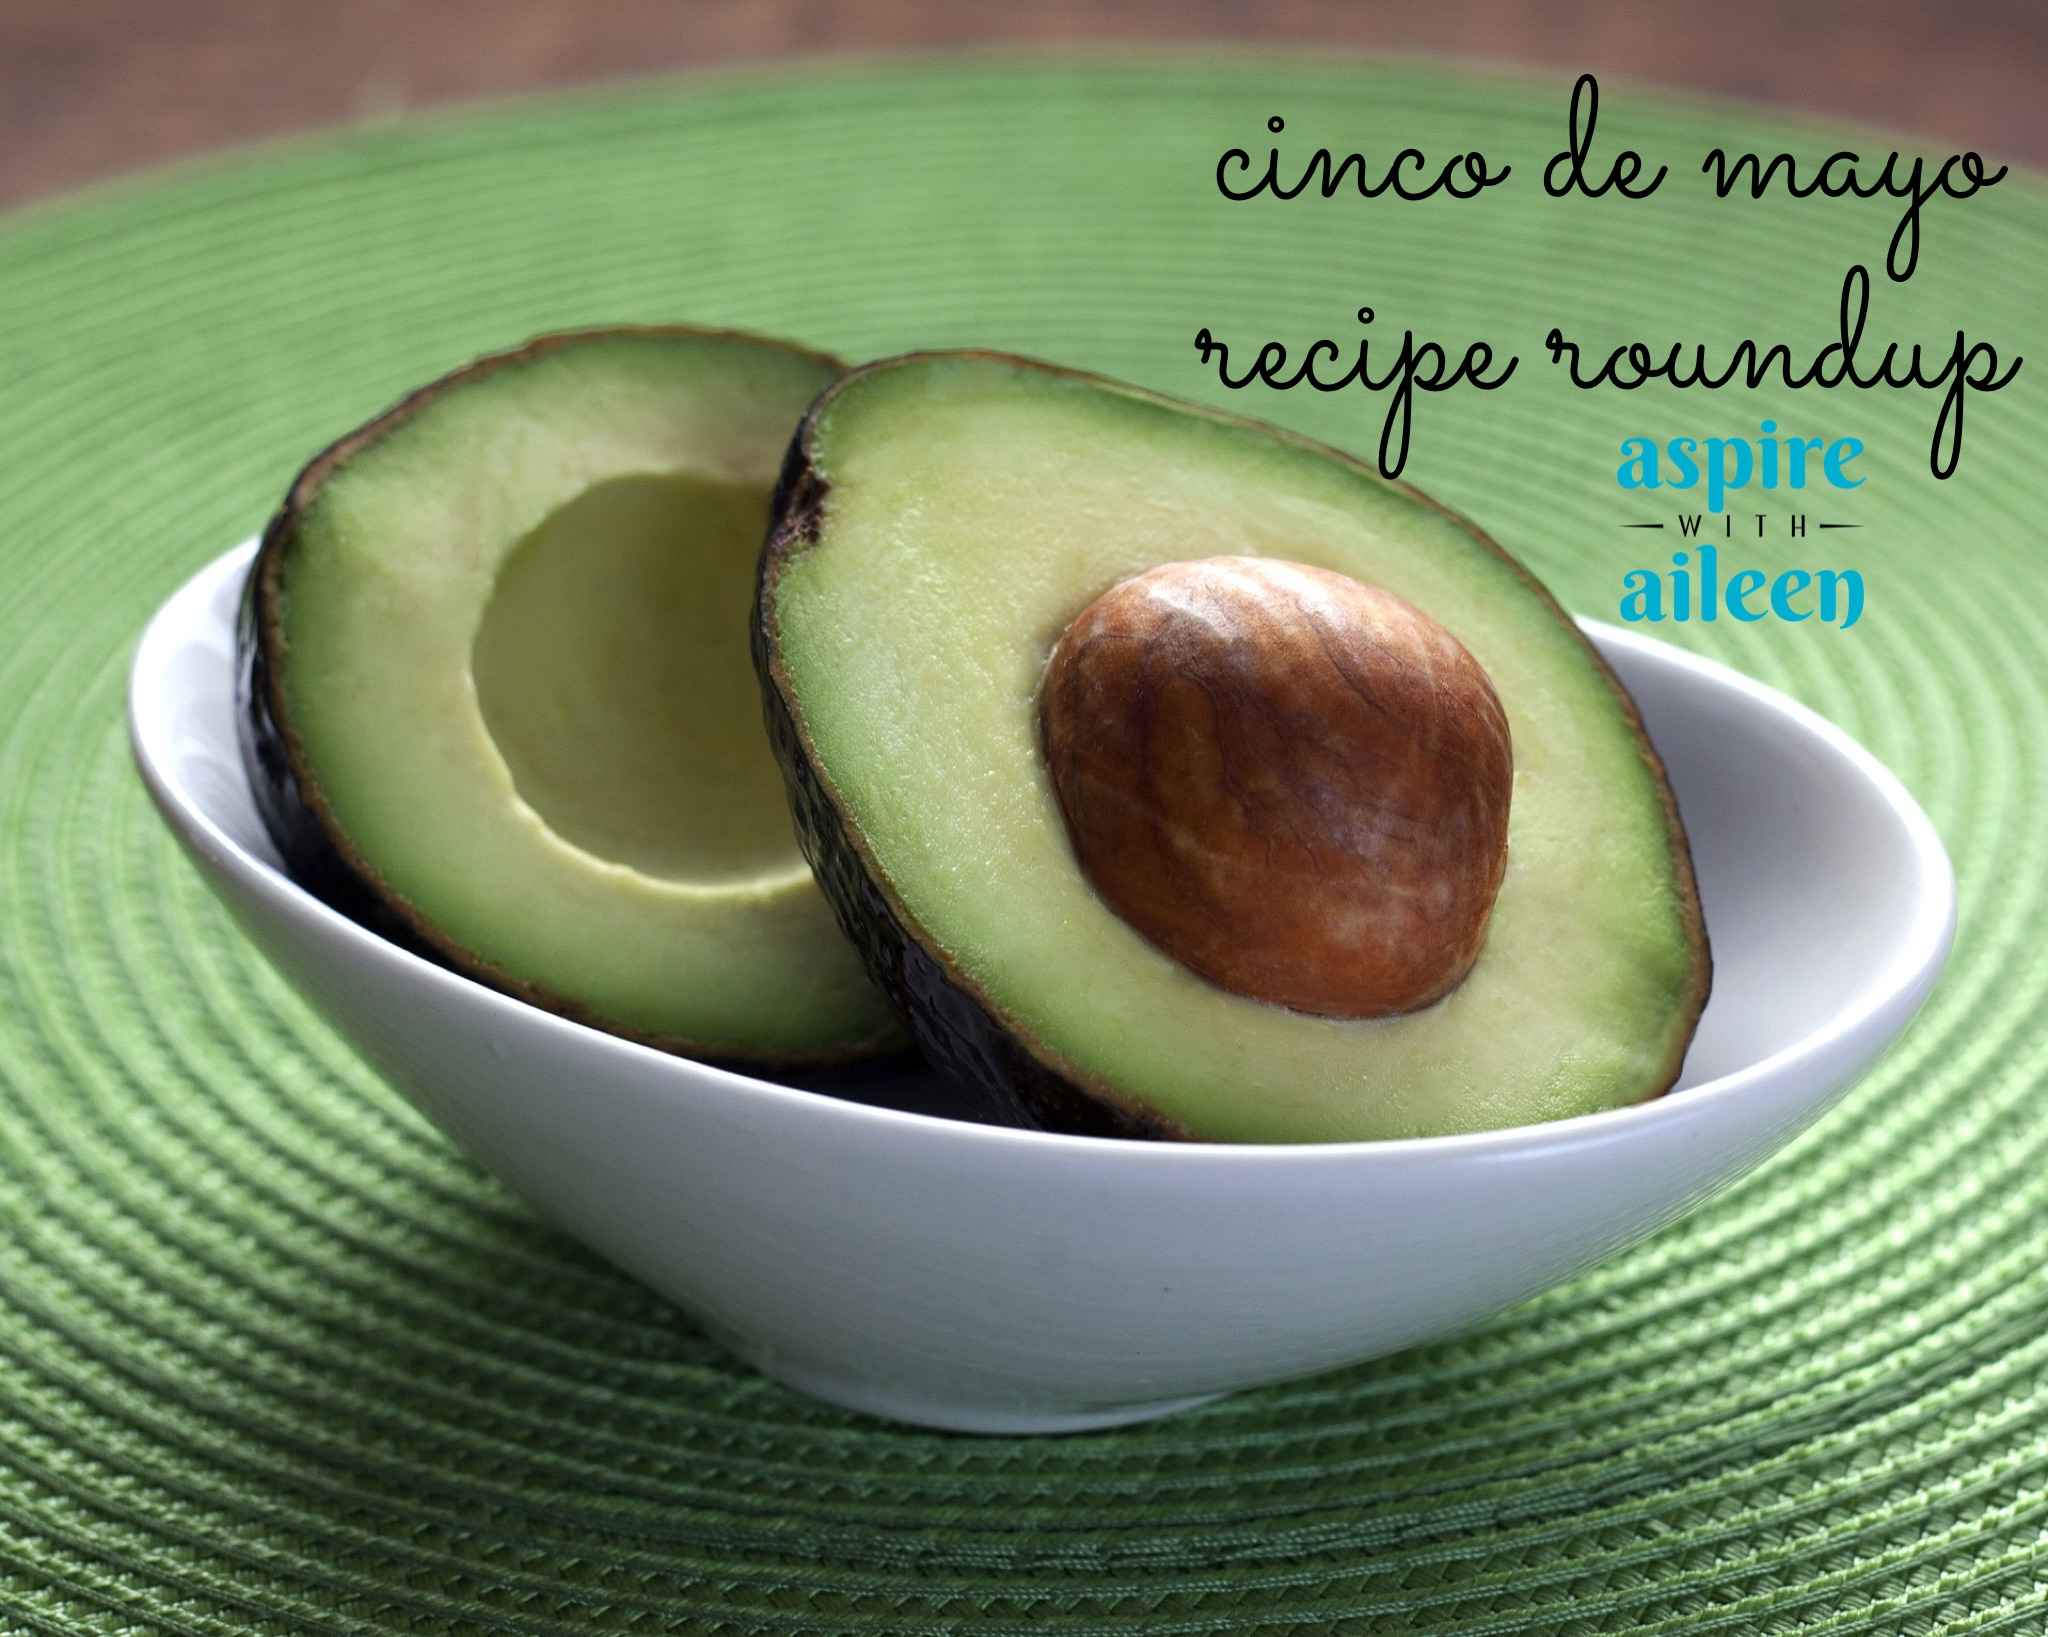 health coaching recipes healthy food aspire with aileen